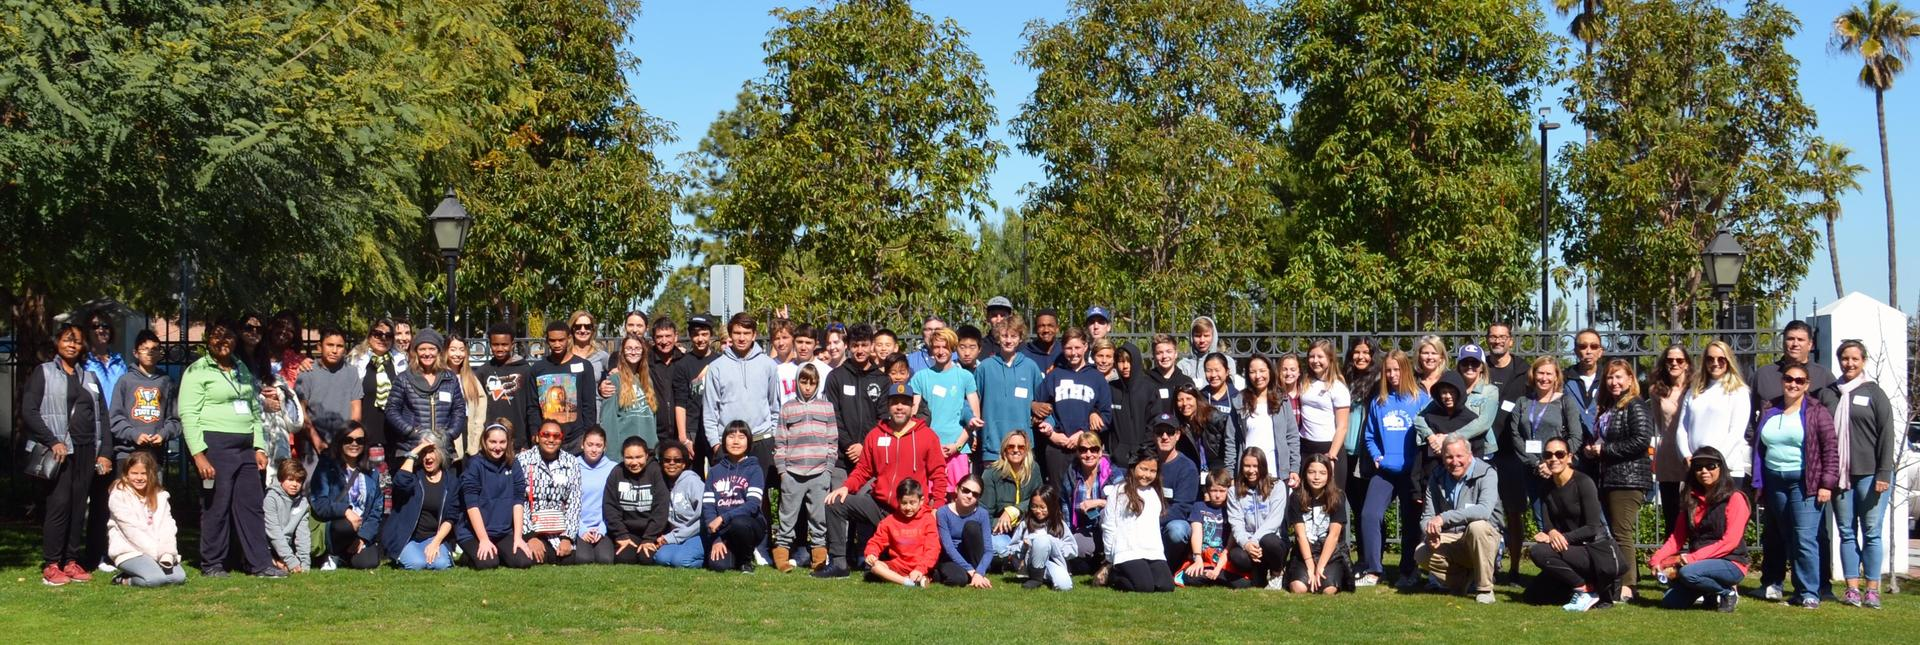 Students, parents, faculty, and staff at our first annual 'Huskies With Heart' community service day.